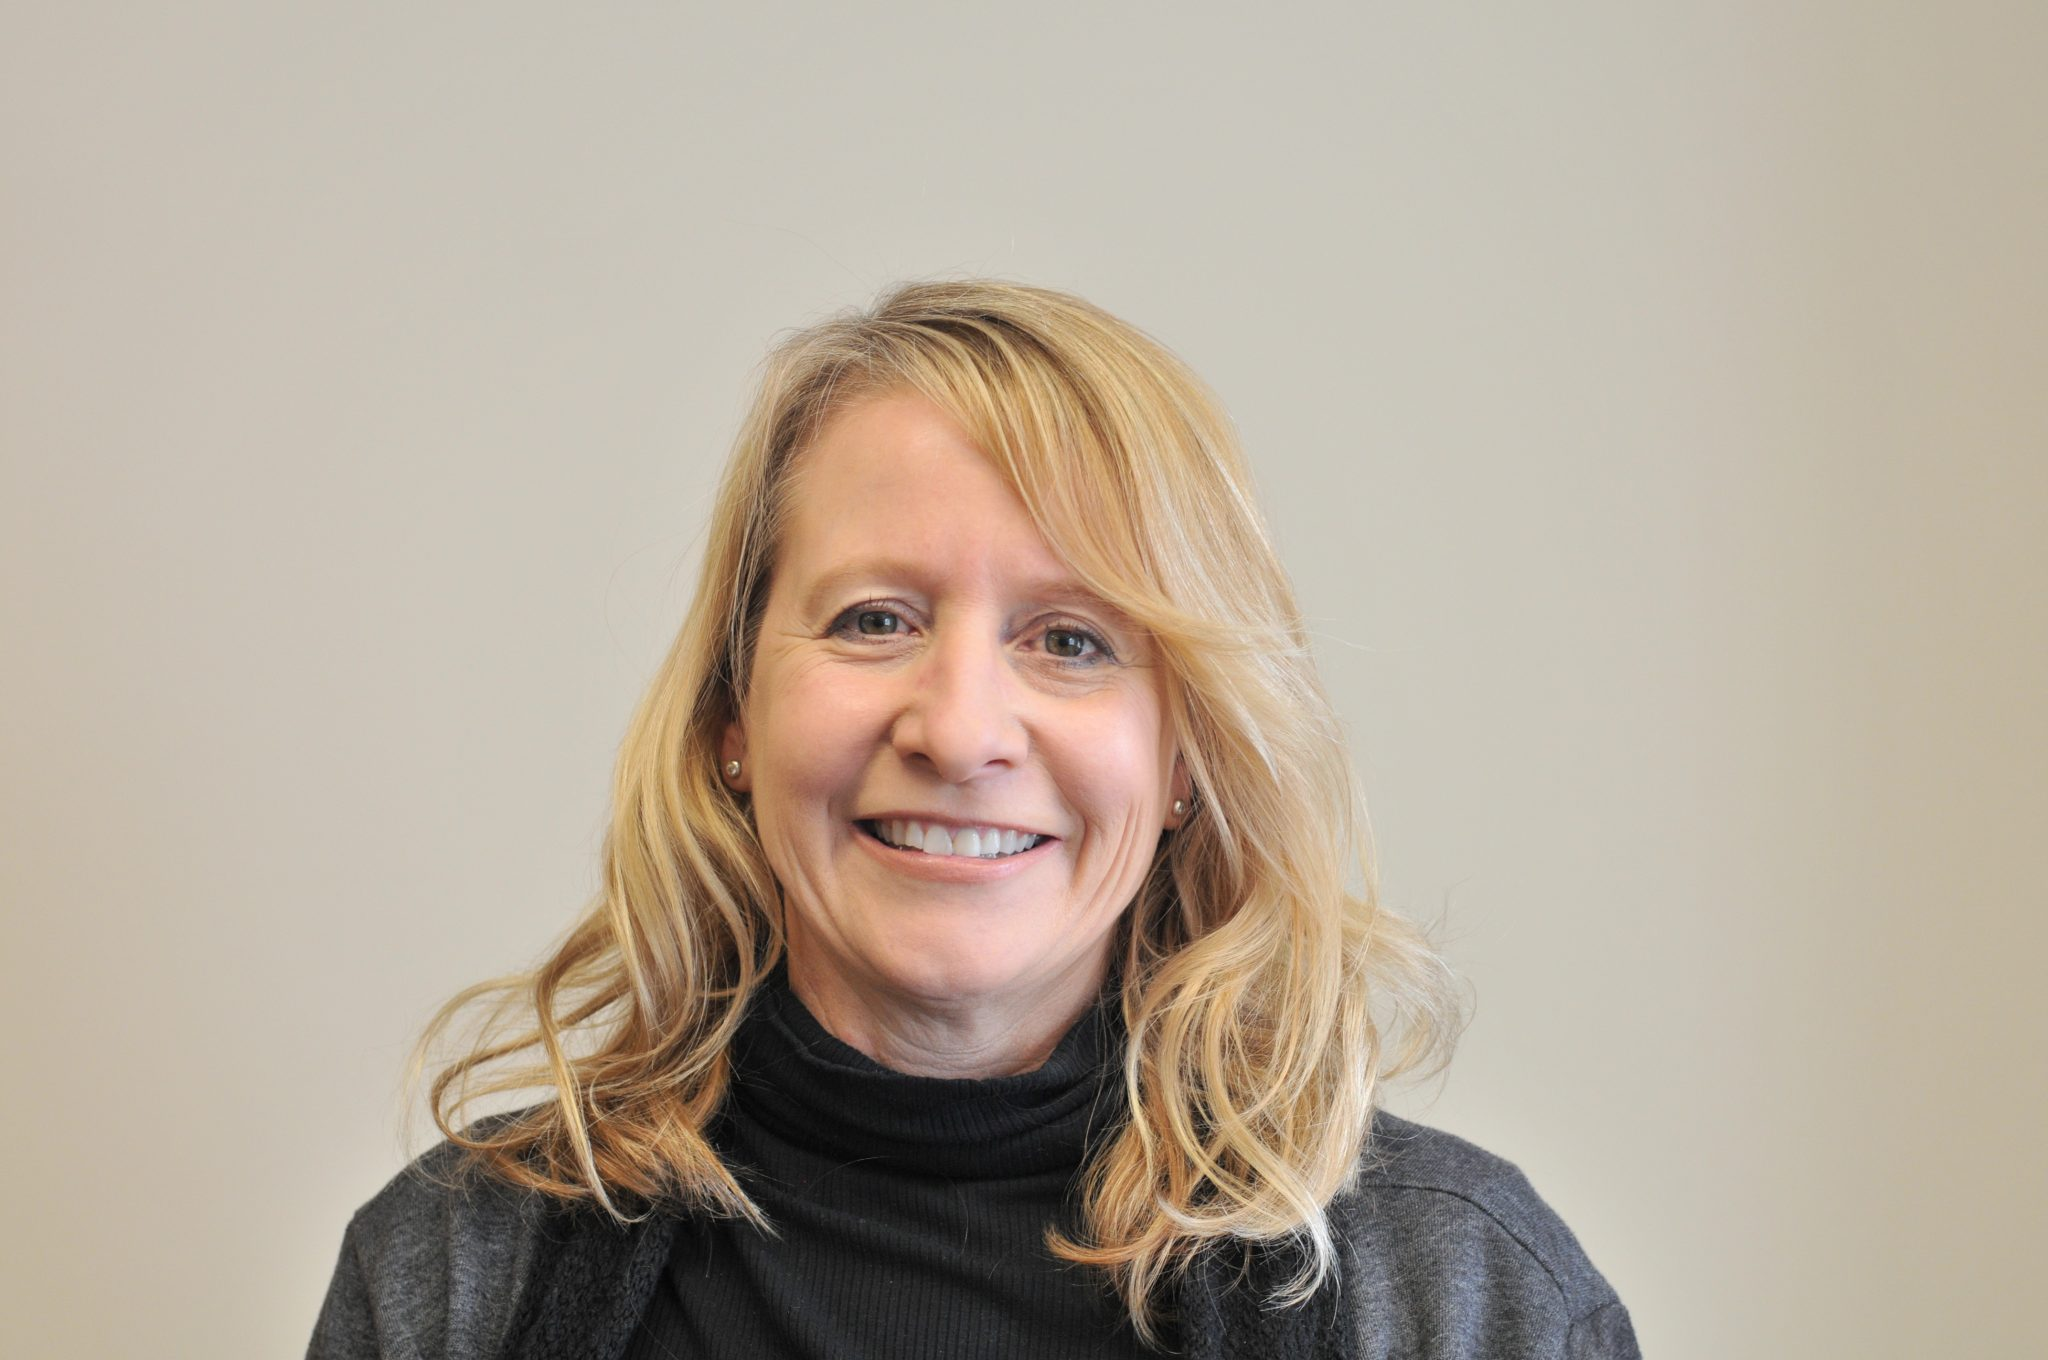 CiF Lab Solutions Announces Lori MacLeod as Regional Sales Manager